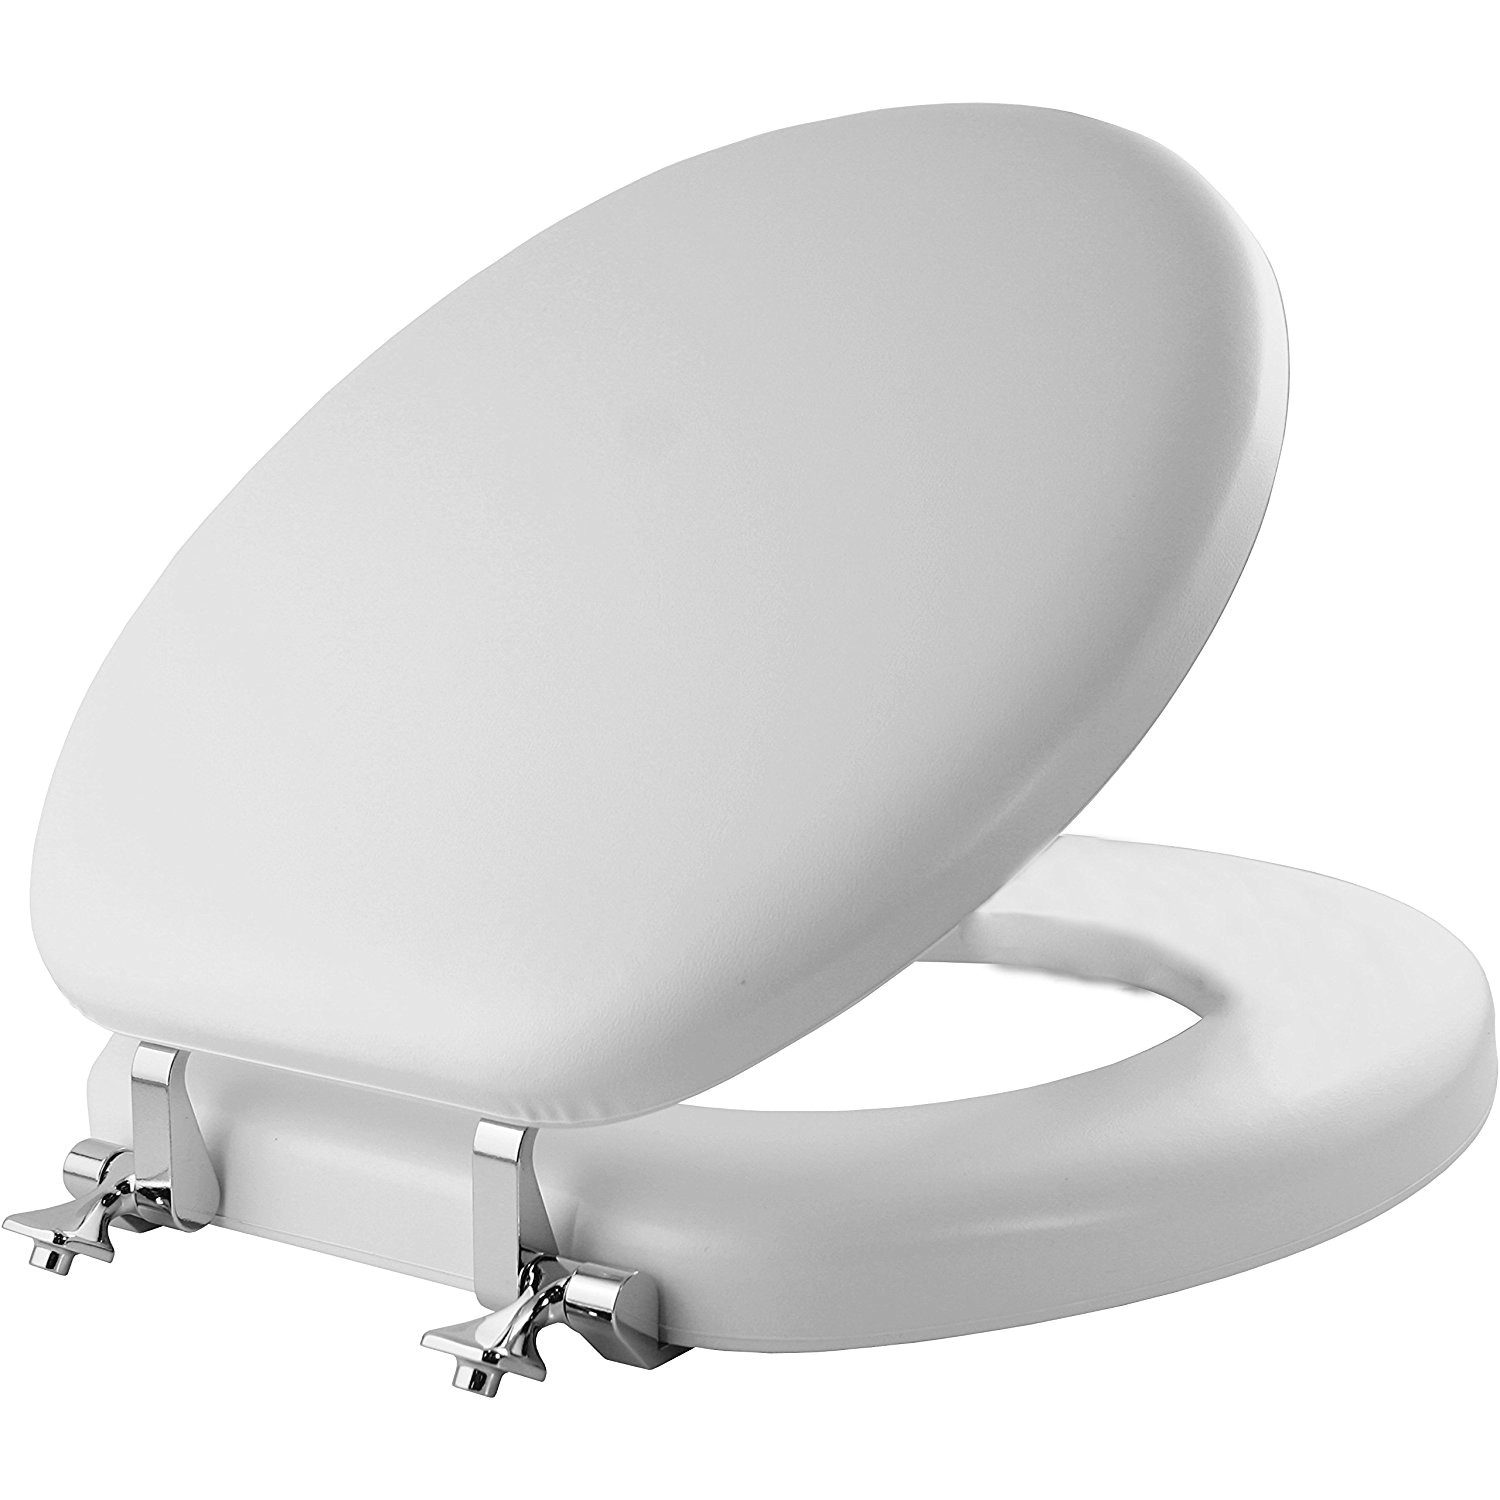 mayfair soft toilet seat with molded wood core and classic chrome metal hinges round